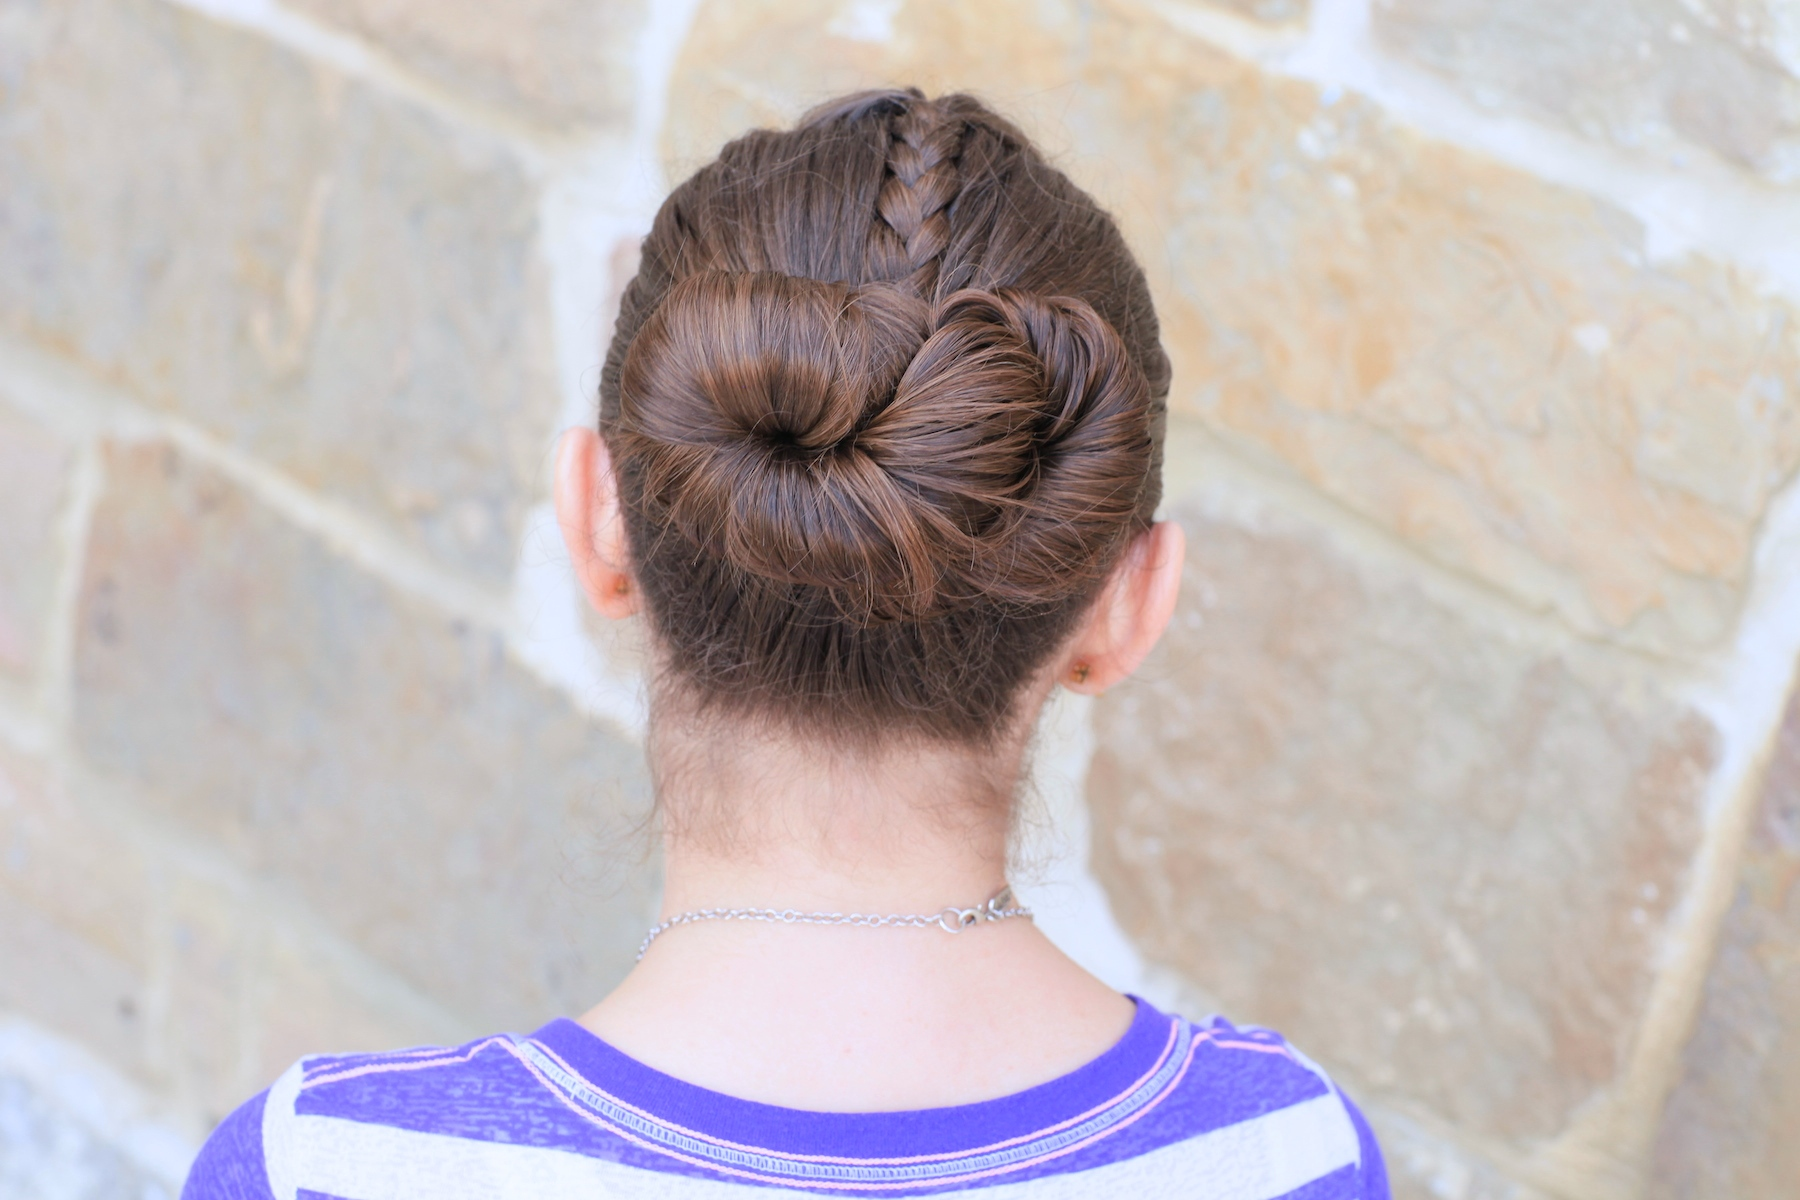 How to Create an Infinity Bun | Updo Hairstyles